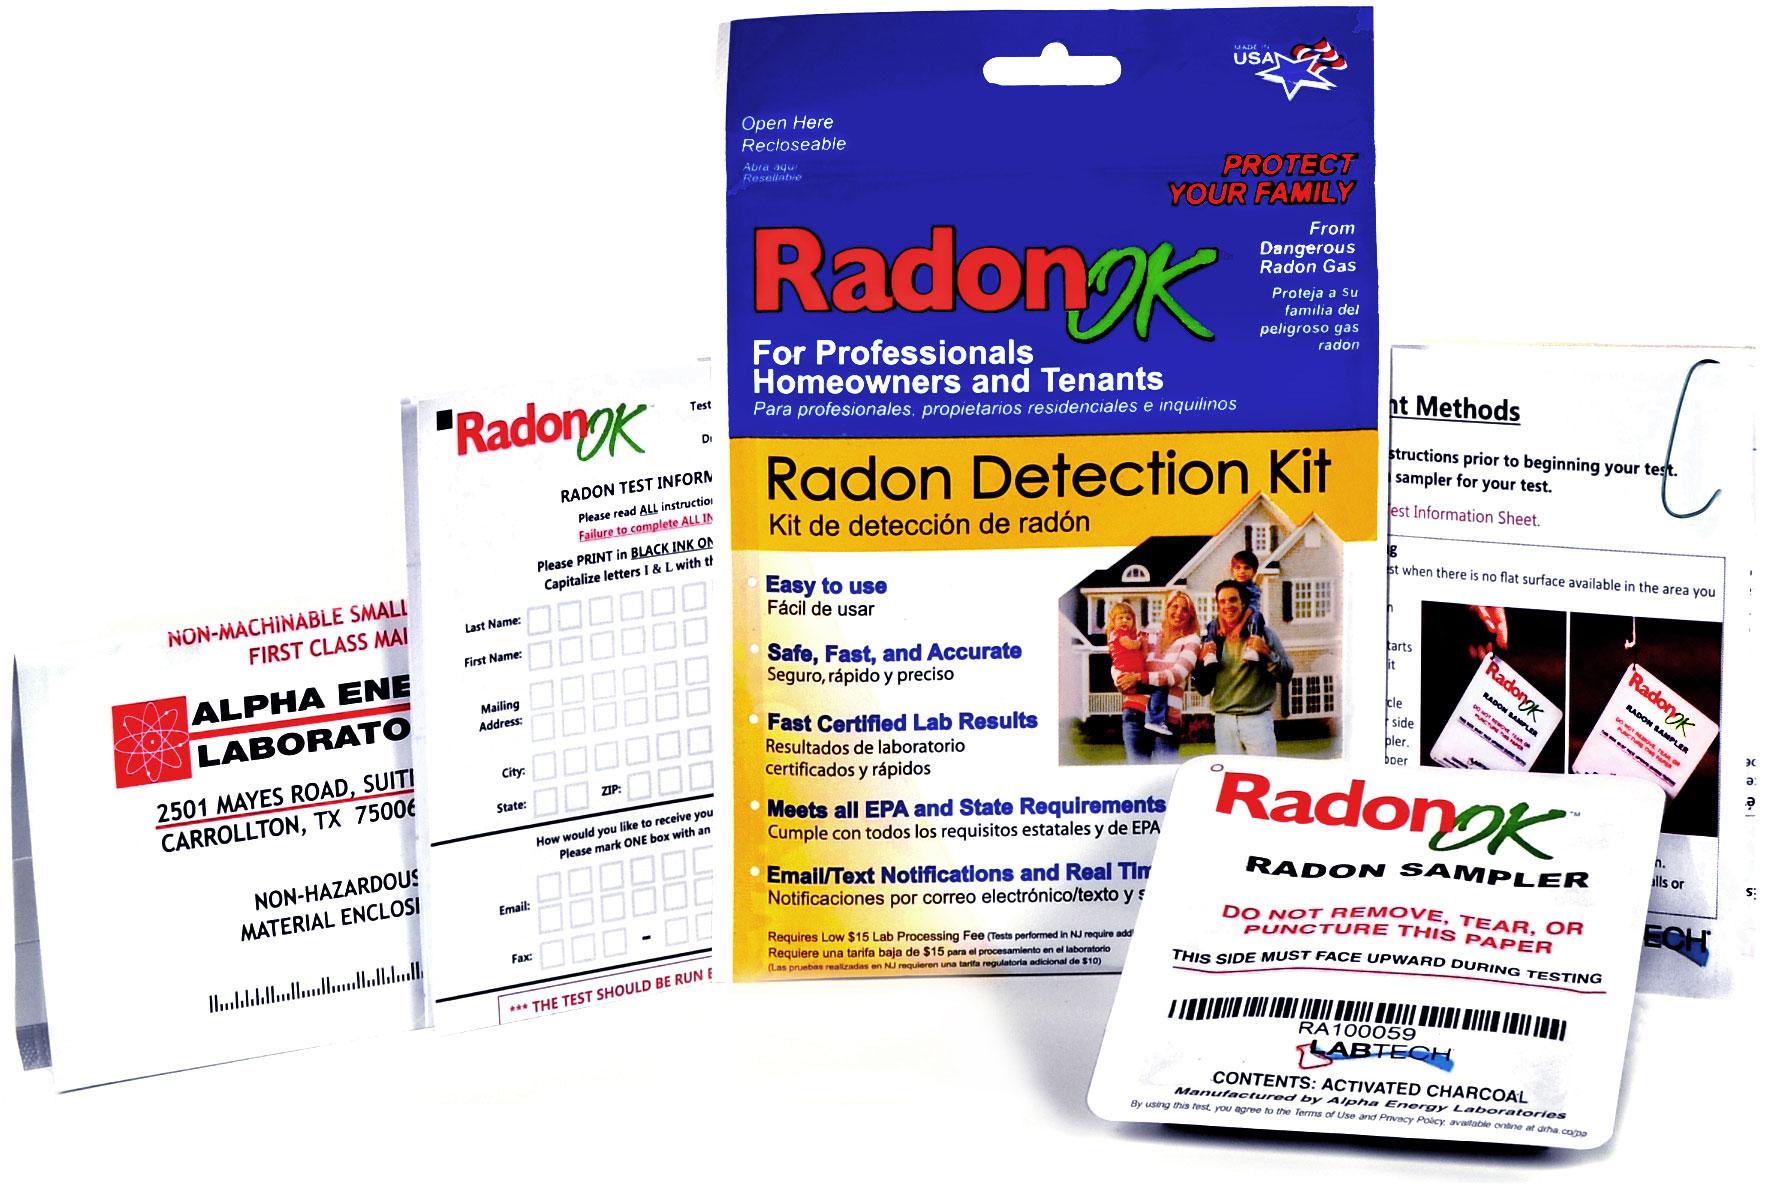 Radon OK package